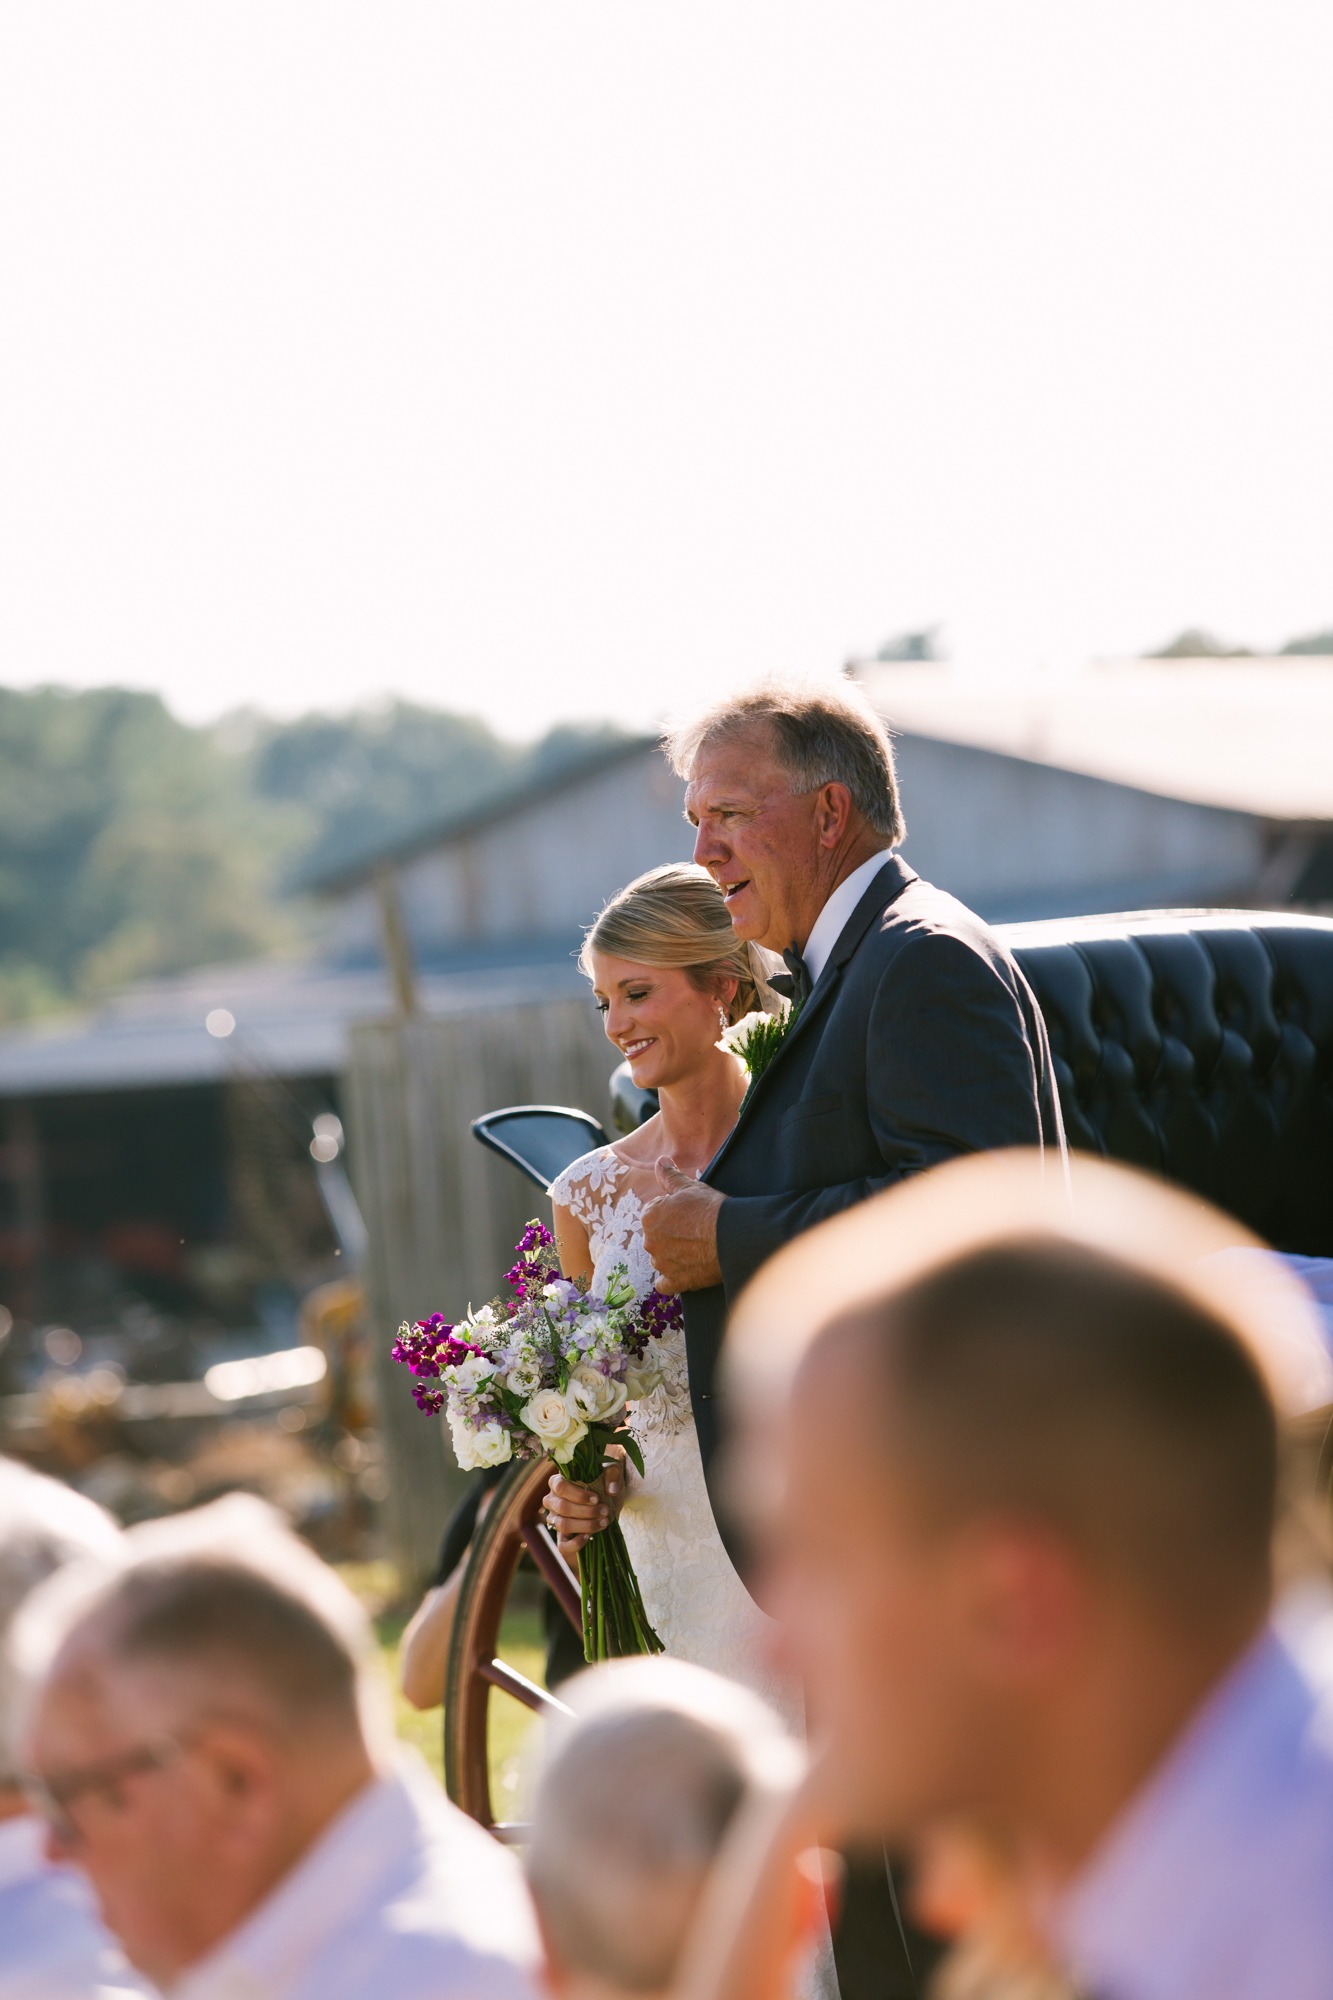 Waynesville, NC Wedding Photography | Father Escorting Bride